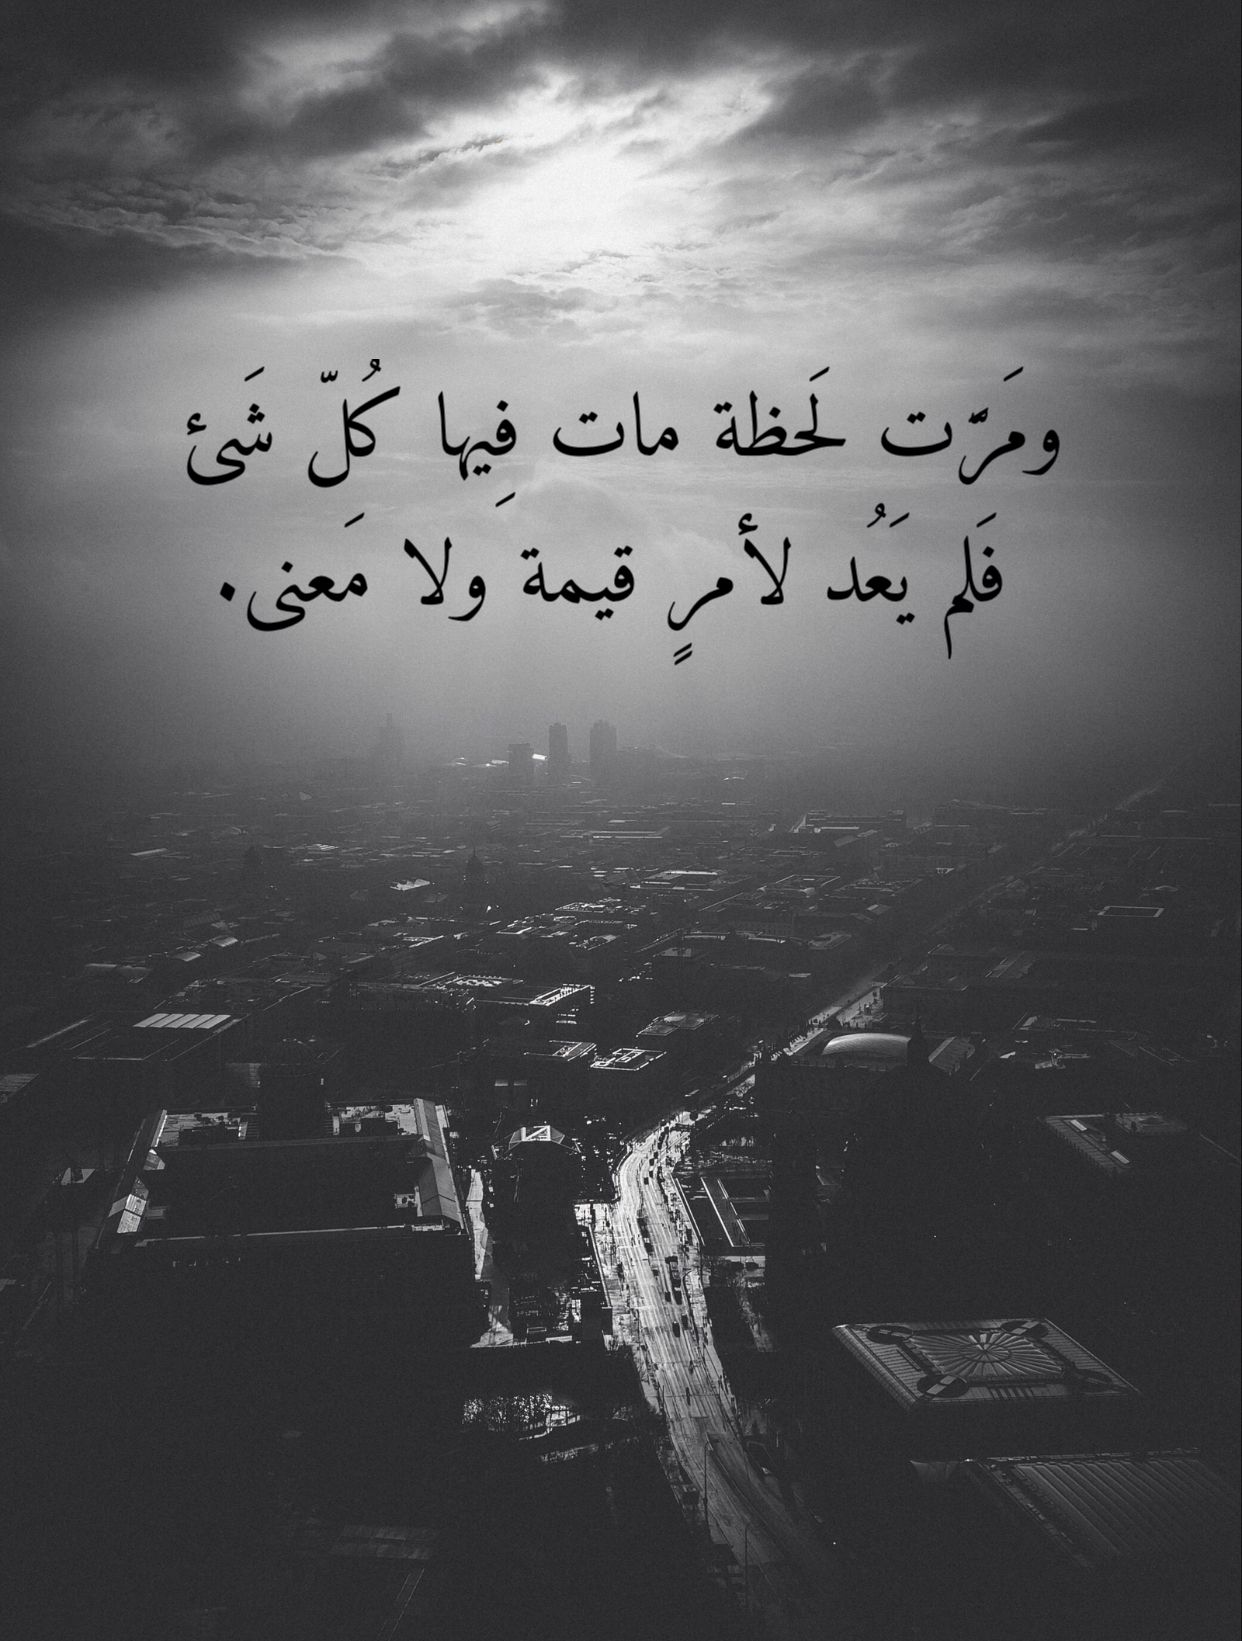 Pin By Fahad Baloch On Arabic Quotes Arabic Quotes Beautiful Arabic Words Laughing Quotes